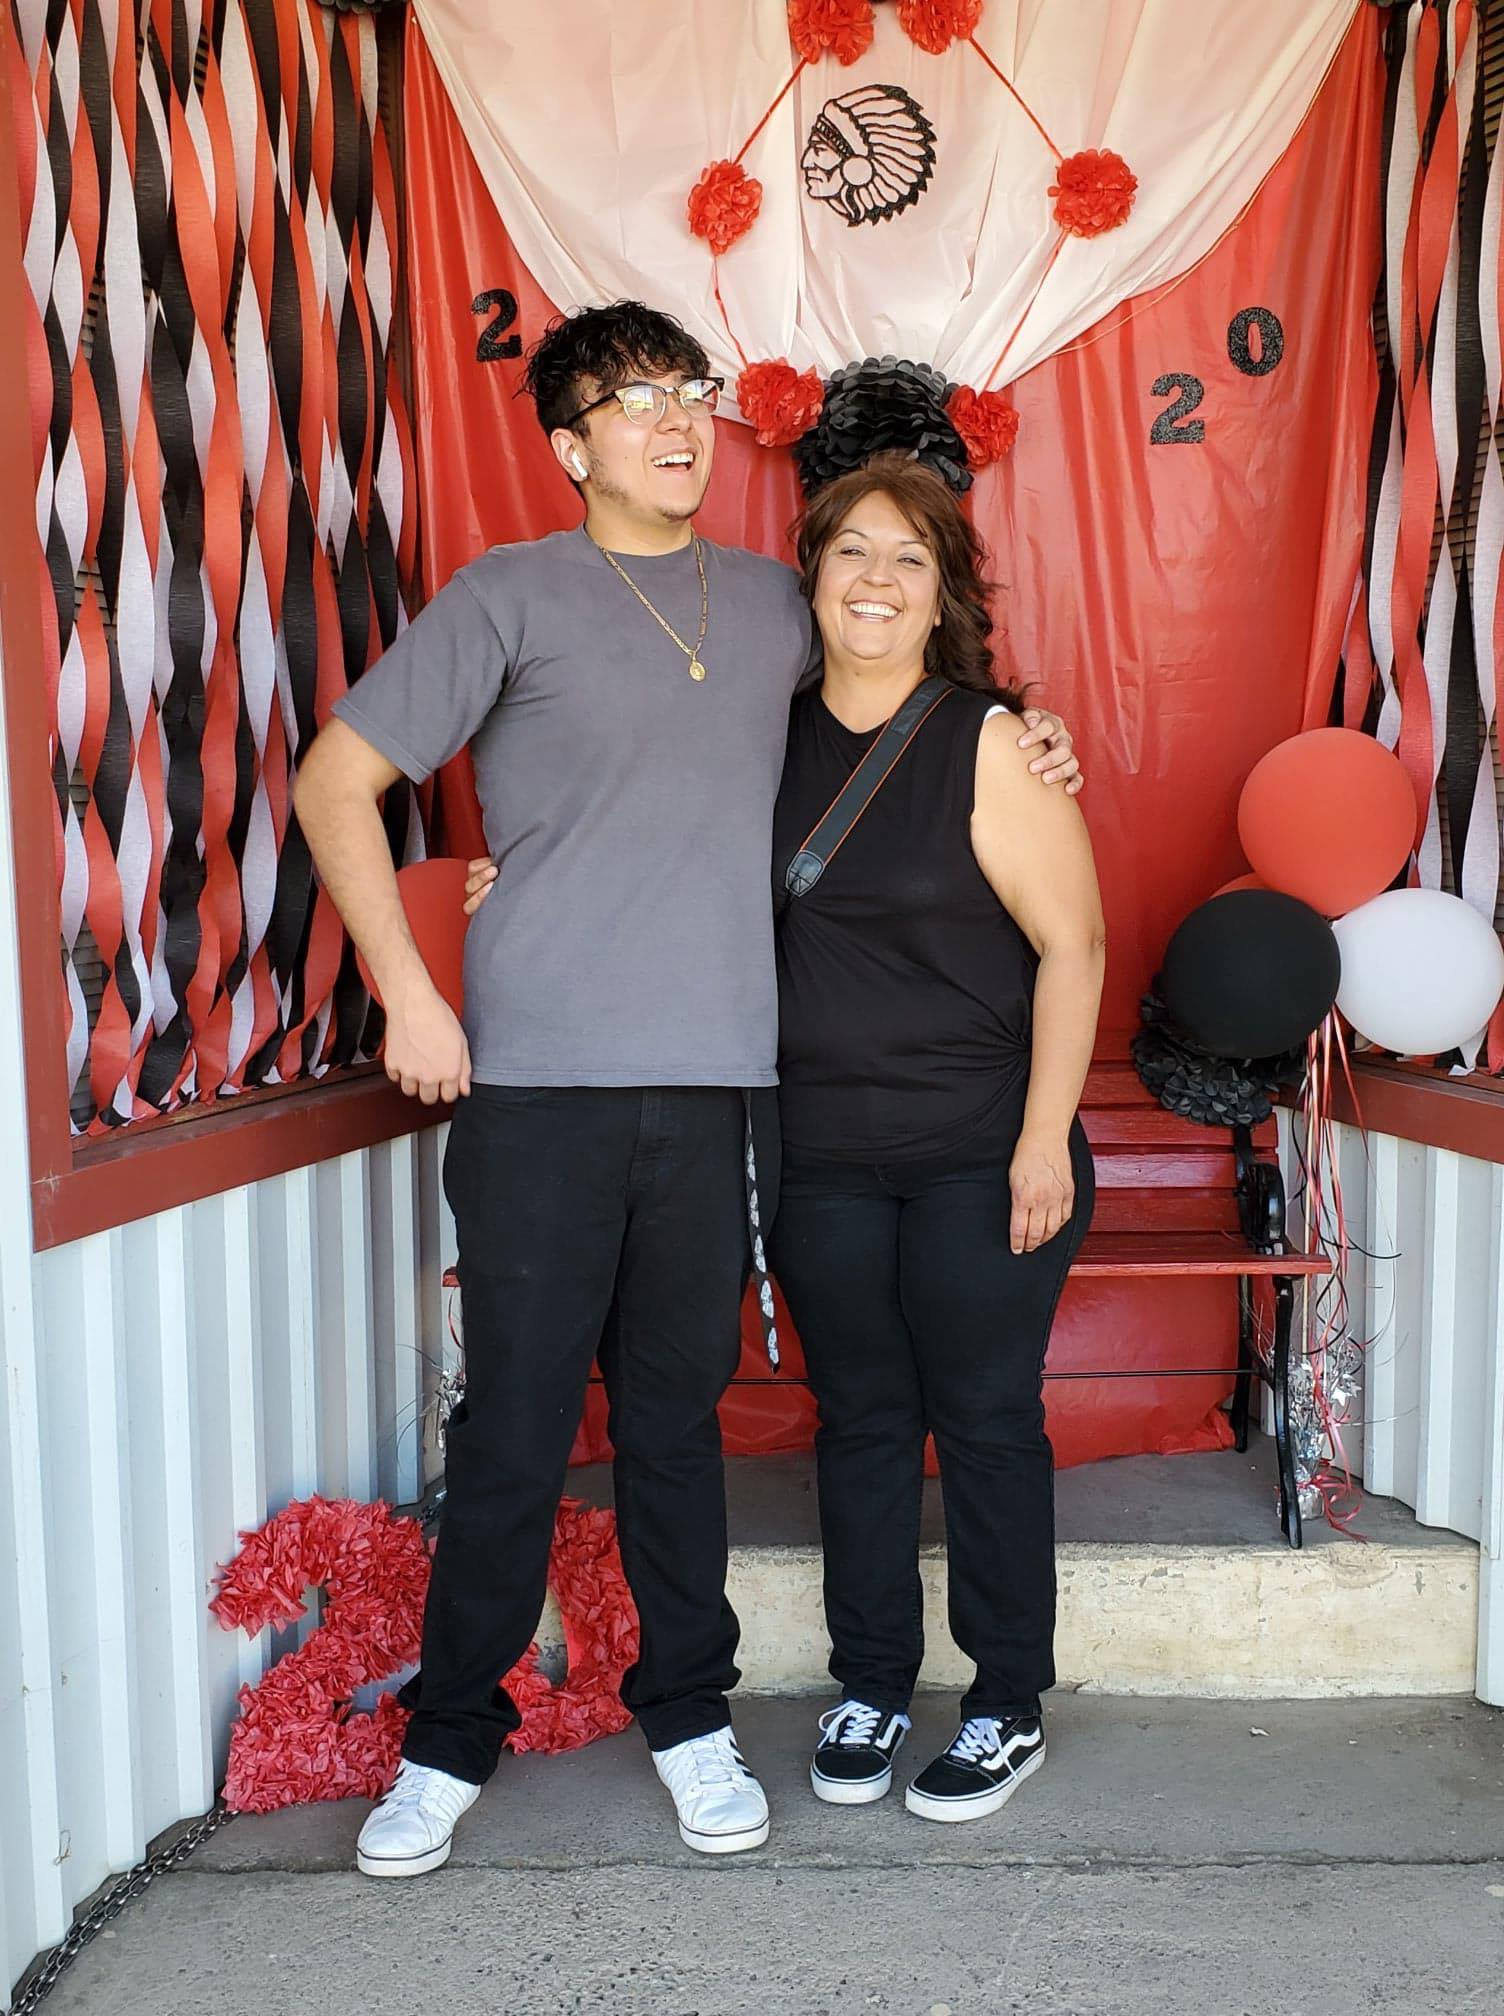 Anna and son Angel Villalobos in front of outdoor Cricut graduation photo booth for Cobre High School